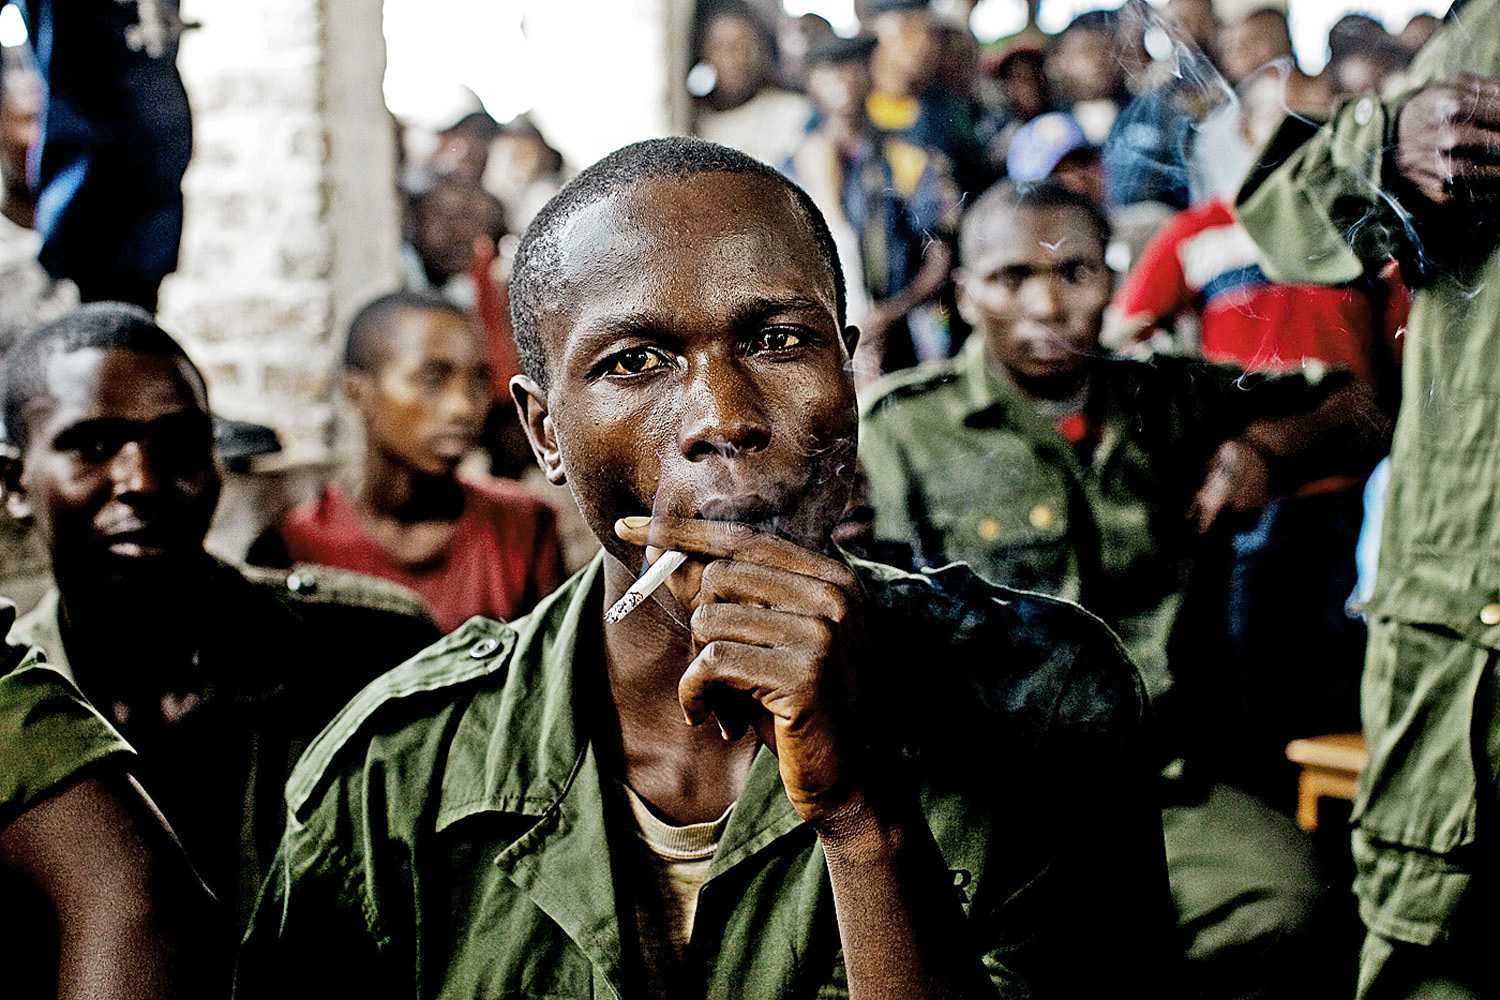 February 21, 2011. Sido Bizinungu, a close associate of Lt. Col. Mutuare Daniel Kibibi, smokes a cigarette after being convicted of crimes against humanity in the town of Baraka, Congo.